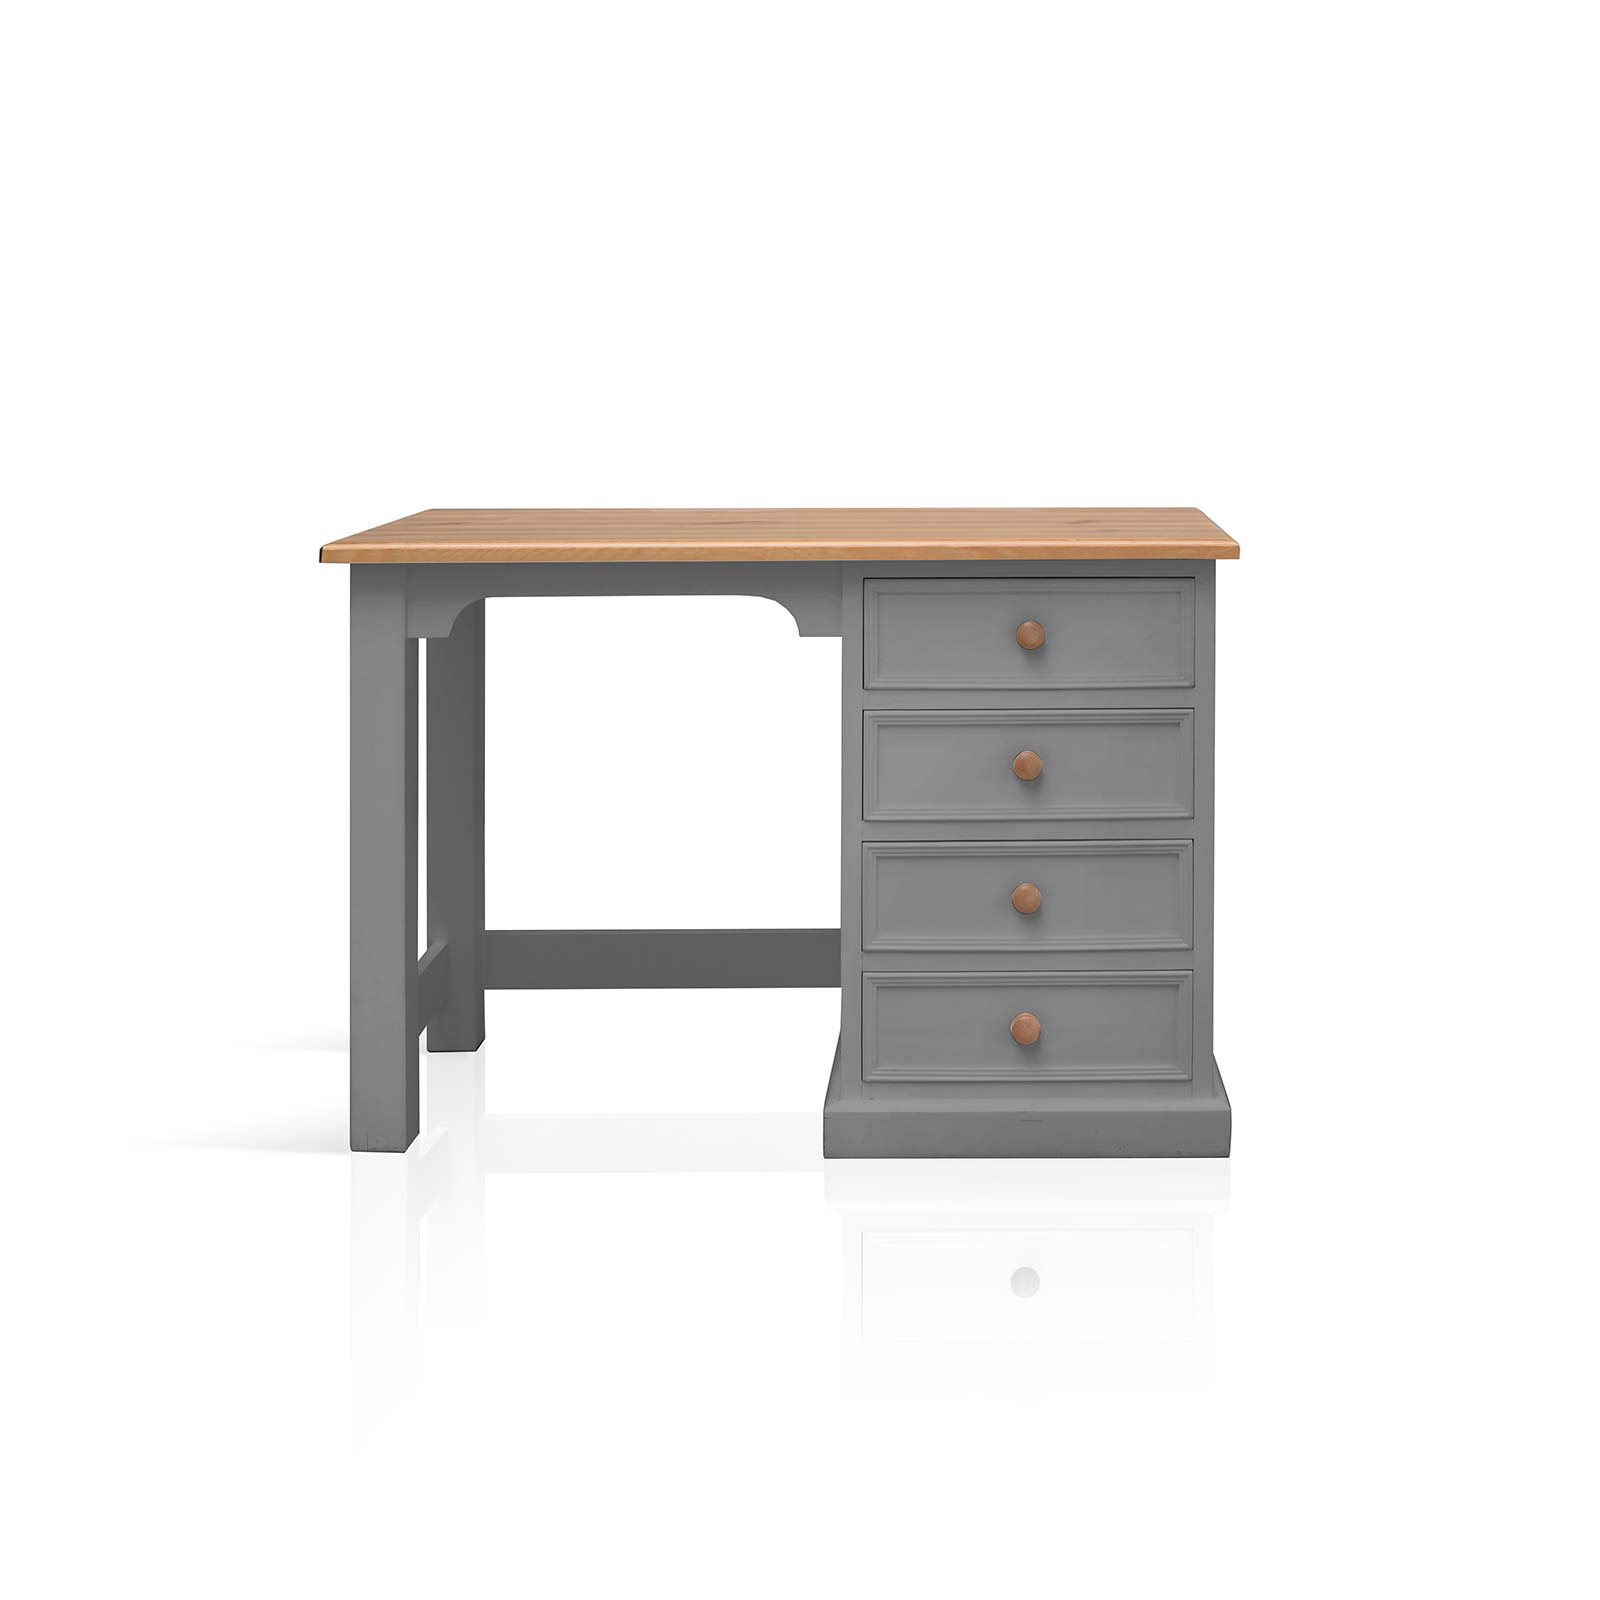 Beyond Home The Soho Painted Furniture Collection Small Dressing Table in Grey